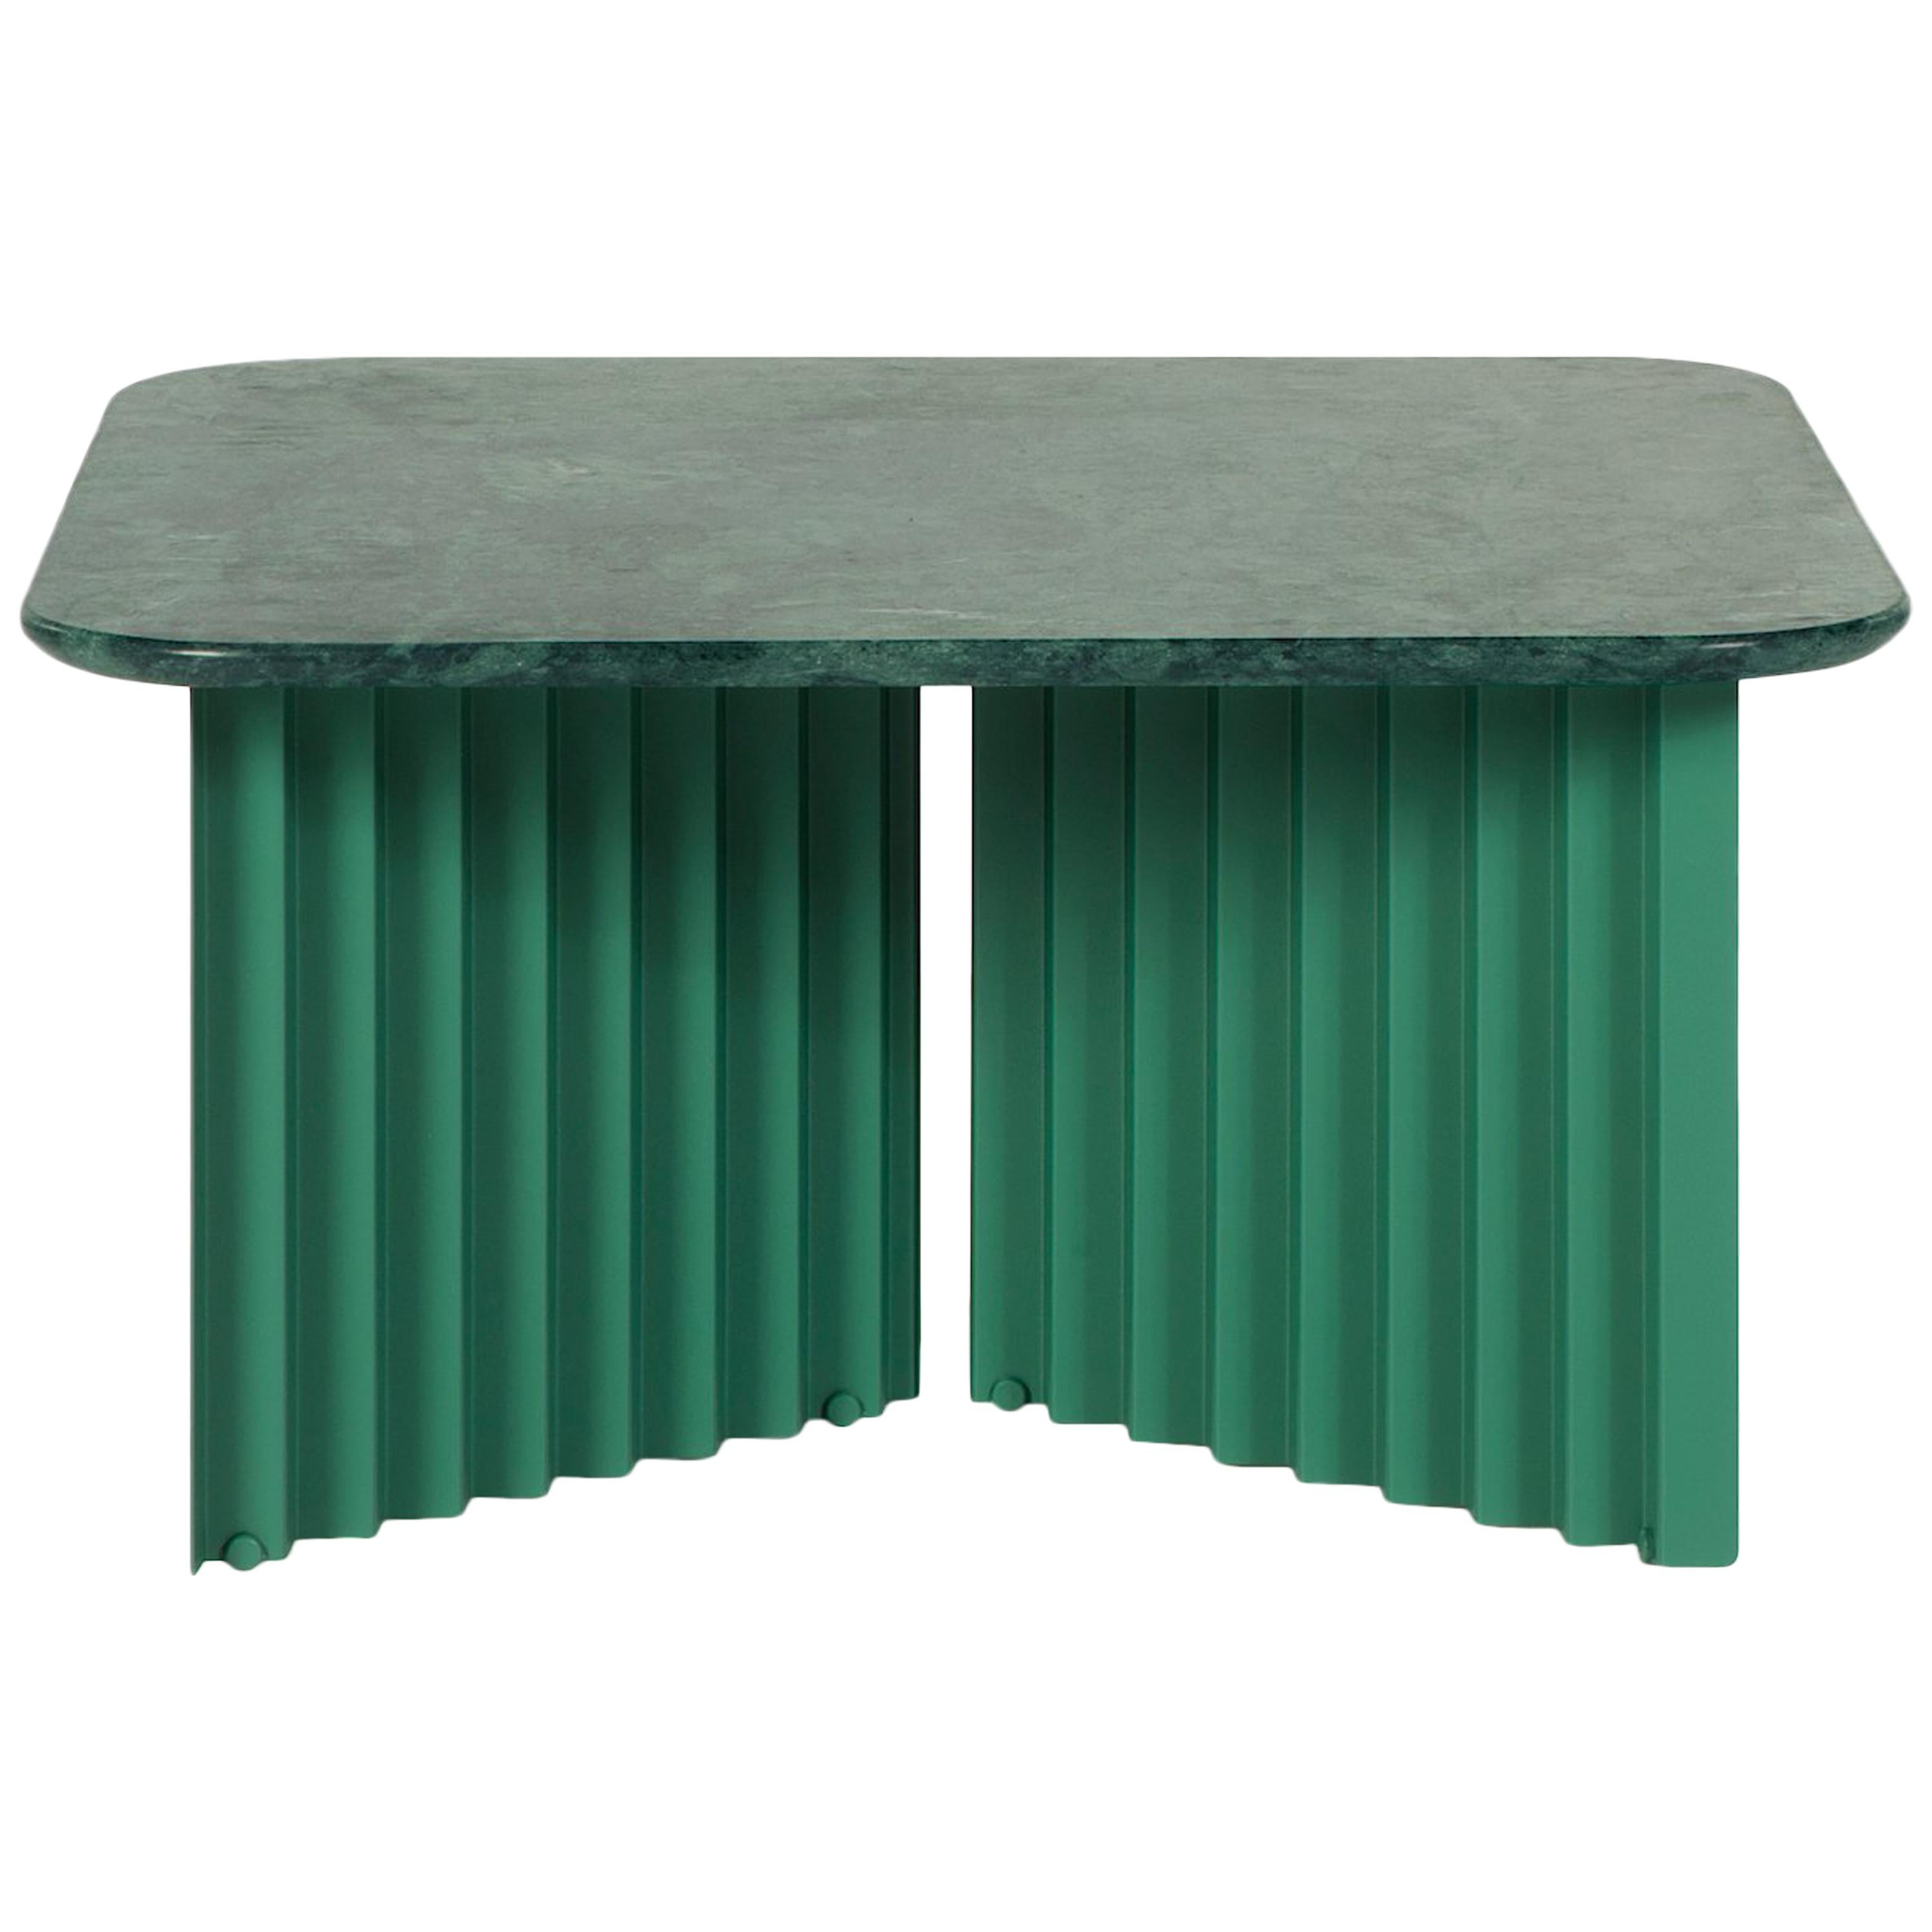 RS Barcelona Plec Medium Table in Green Marble by A.P.O.